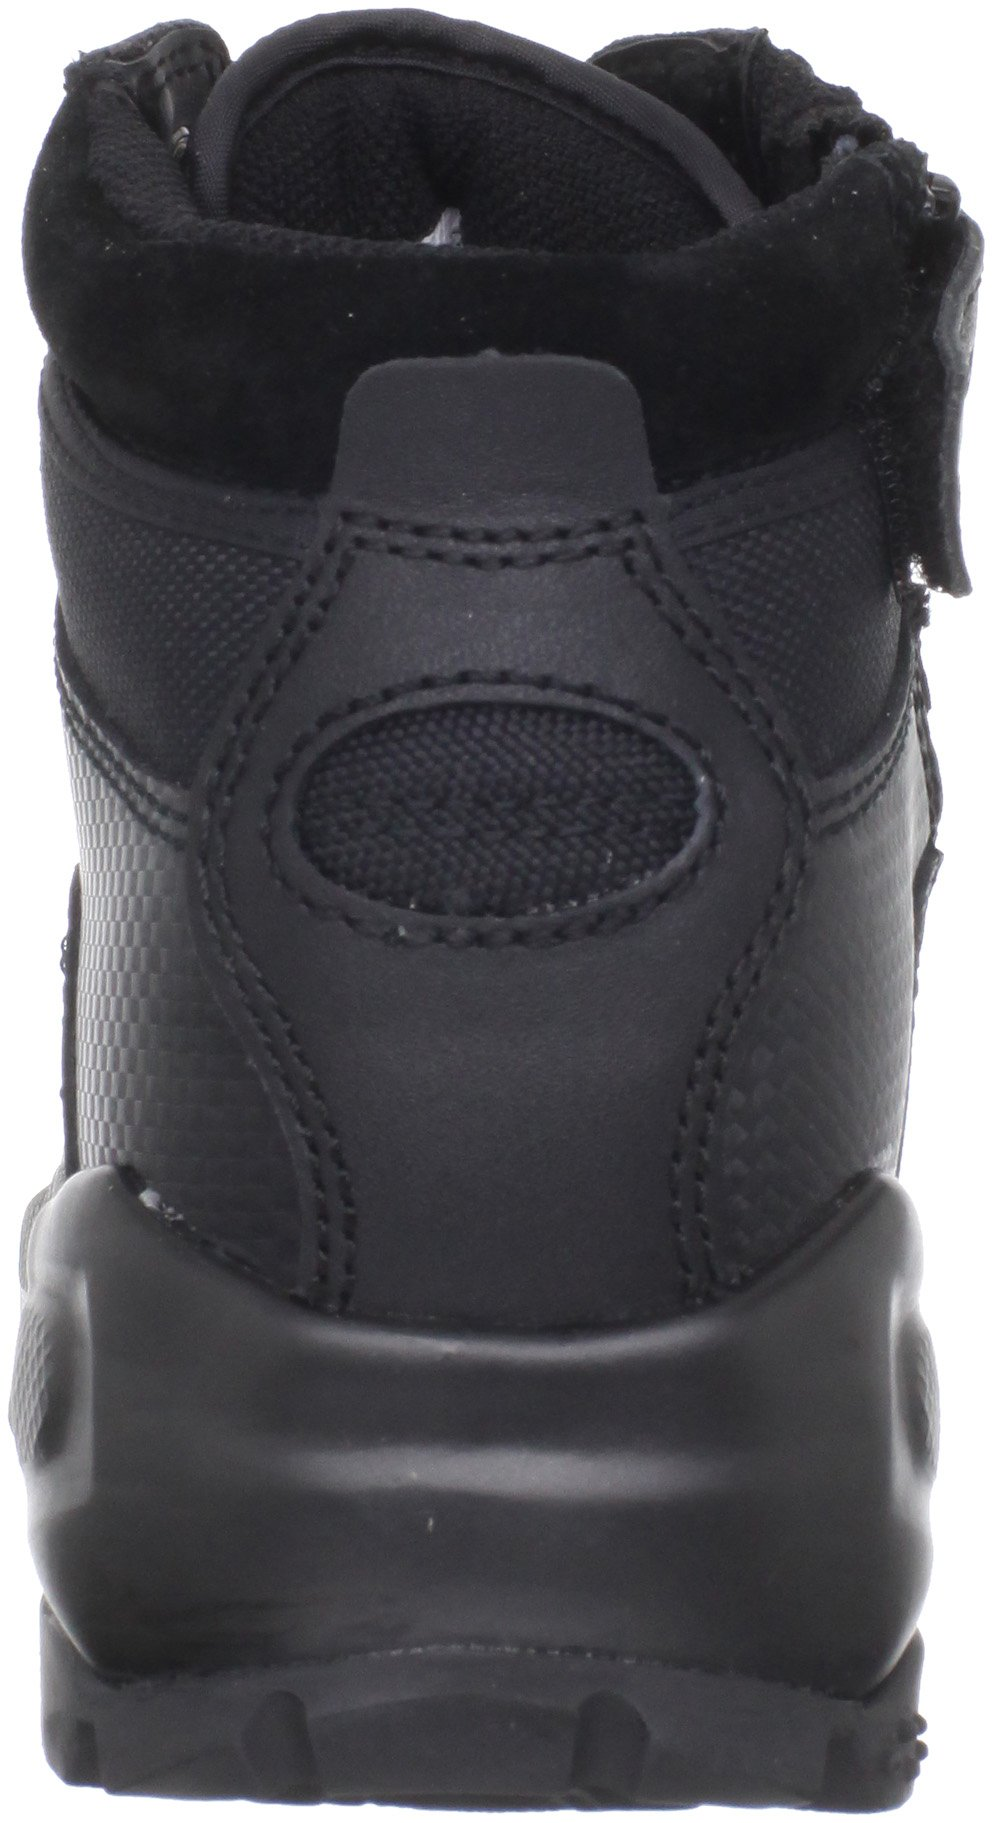 5.11 Women's A.T.A.C. 6'' Side Zip Tactical Boots, Style 12025, Black, 6 R by 5.11 (Image #2)